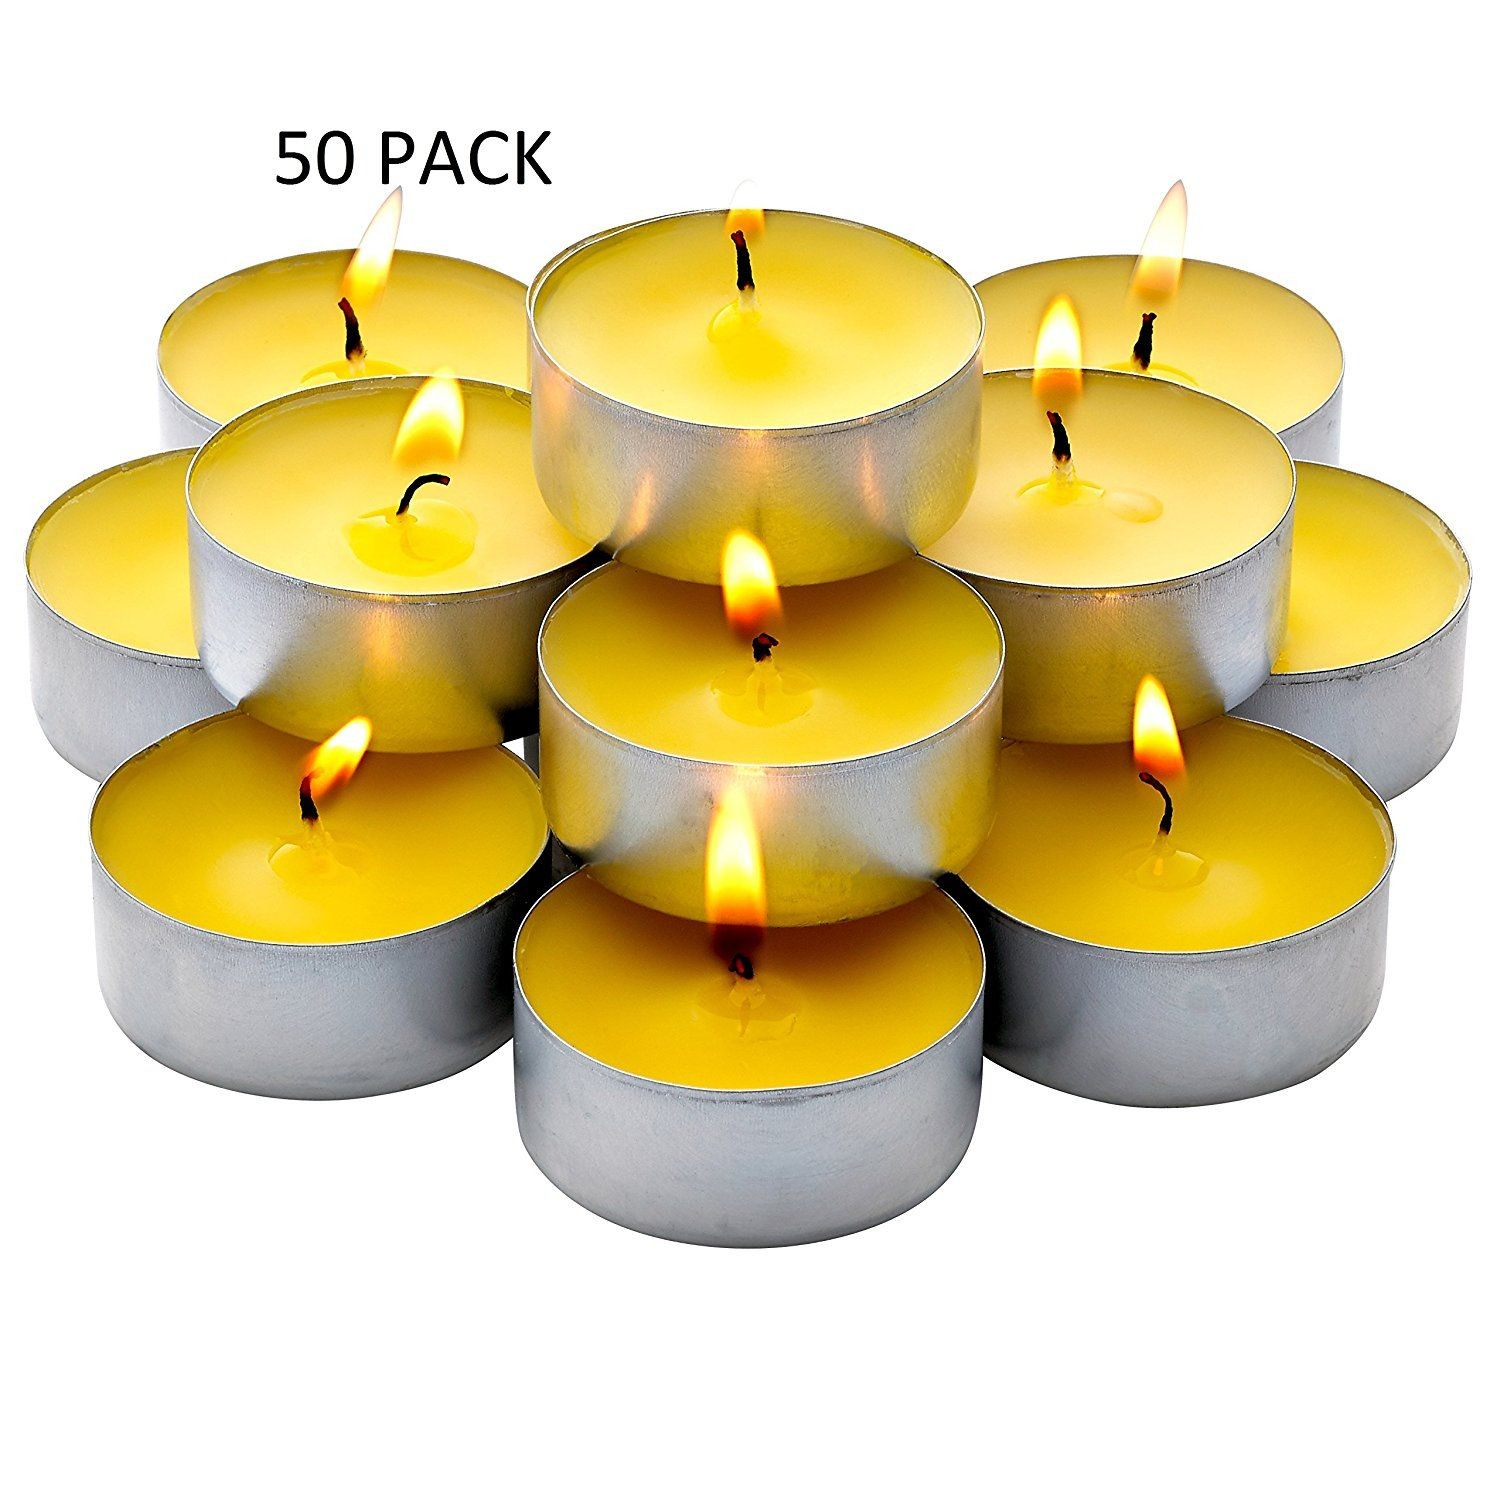 How To Use Citronella Candles